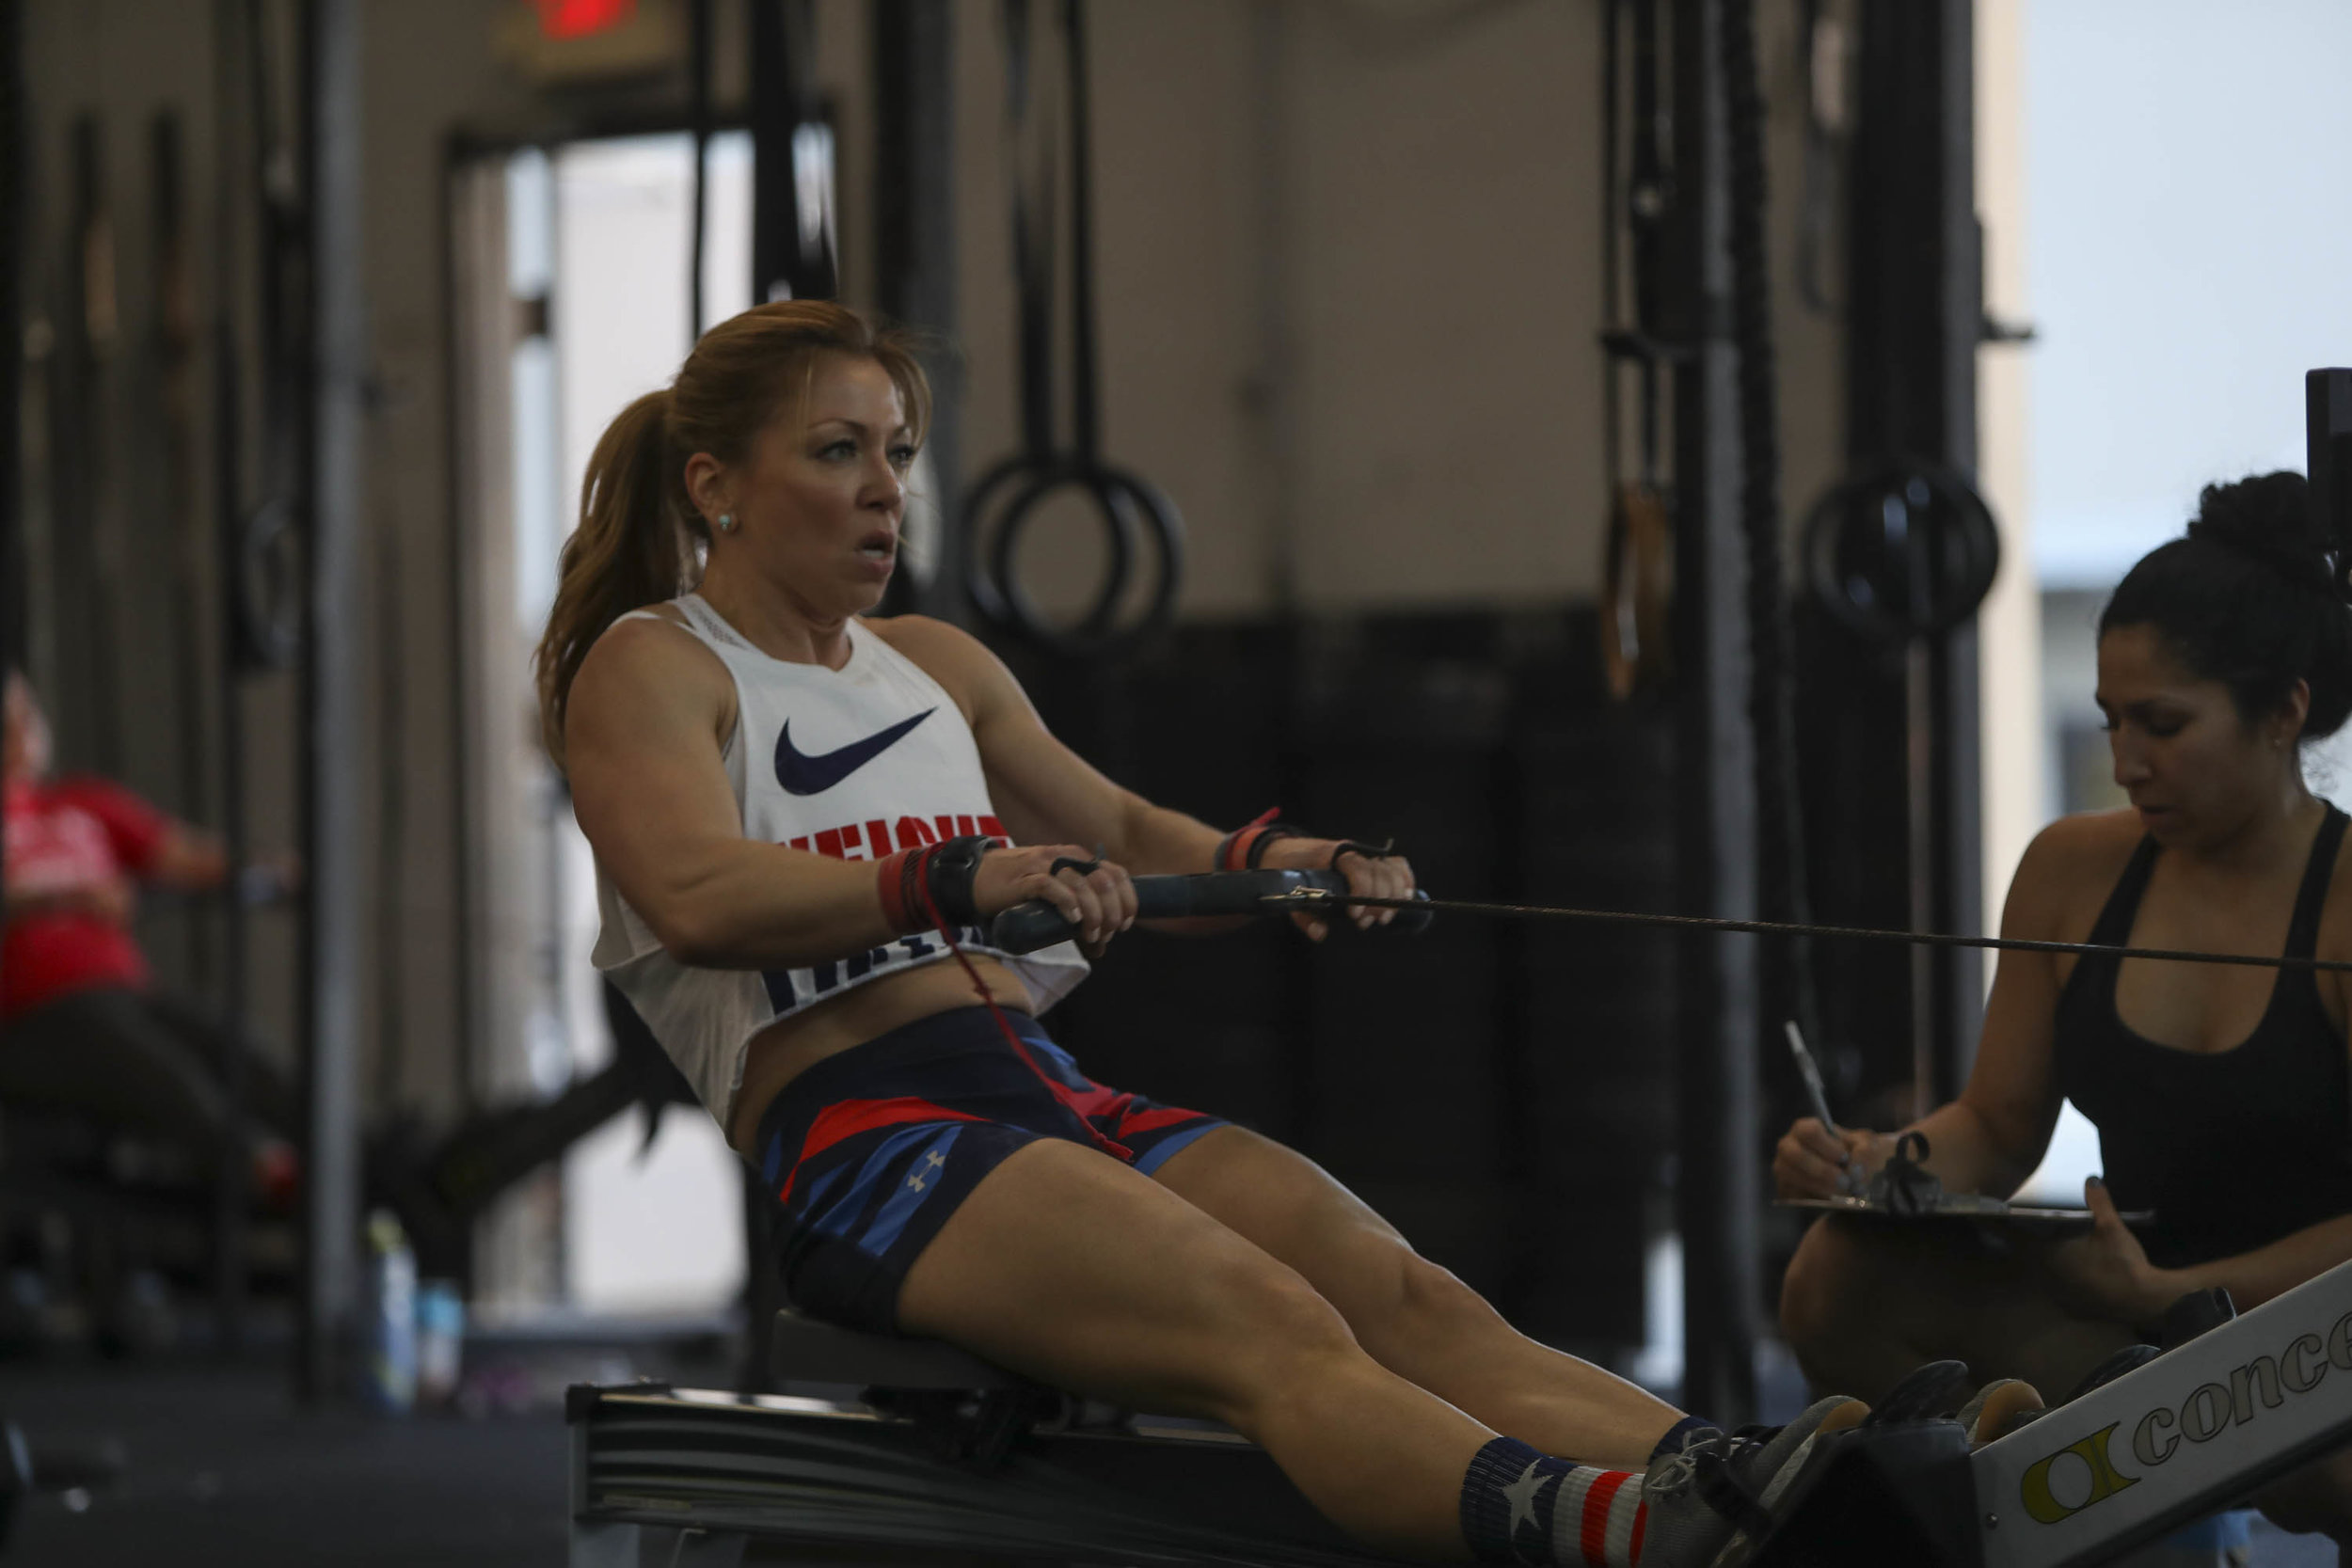 """Halvi's message to the Skyline Coaches:  """"I just realized that today is my 6 year crossfit anniversary. My fitness journey got so much better and fulfilling after I joined the skyline family. I've reached goals I never thought I could and continue to have the constant drive to reach higher than that because of coaches and friends like you. This is going to be a week for the memory books.""""  Thanks Halvi you are a great example of what Skyline CrossFit is all about! Positive, Patient, and Humble!"""